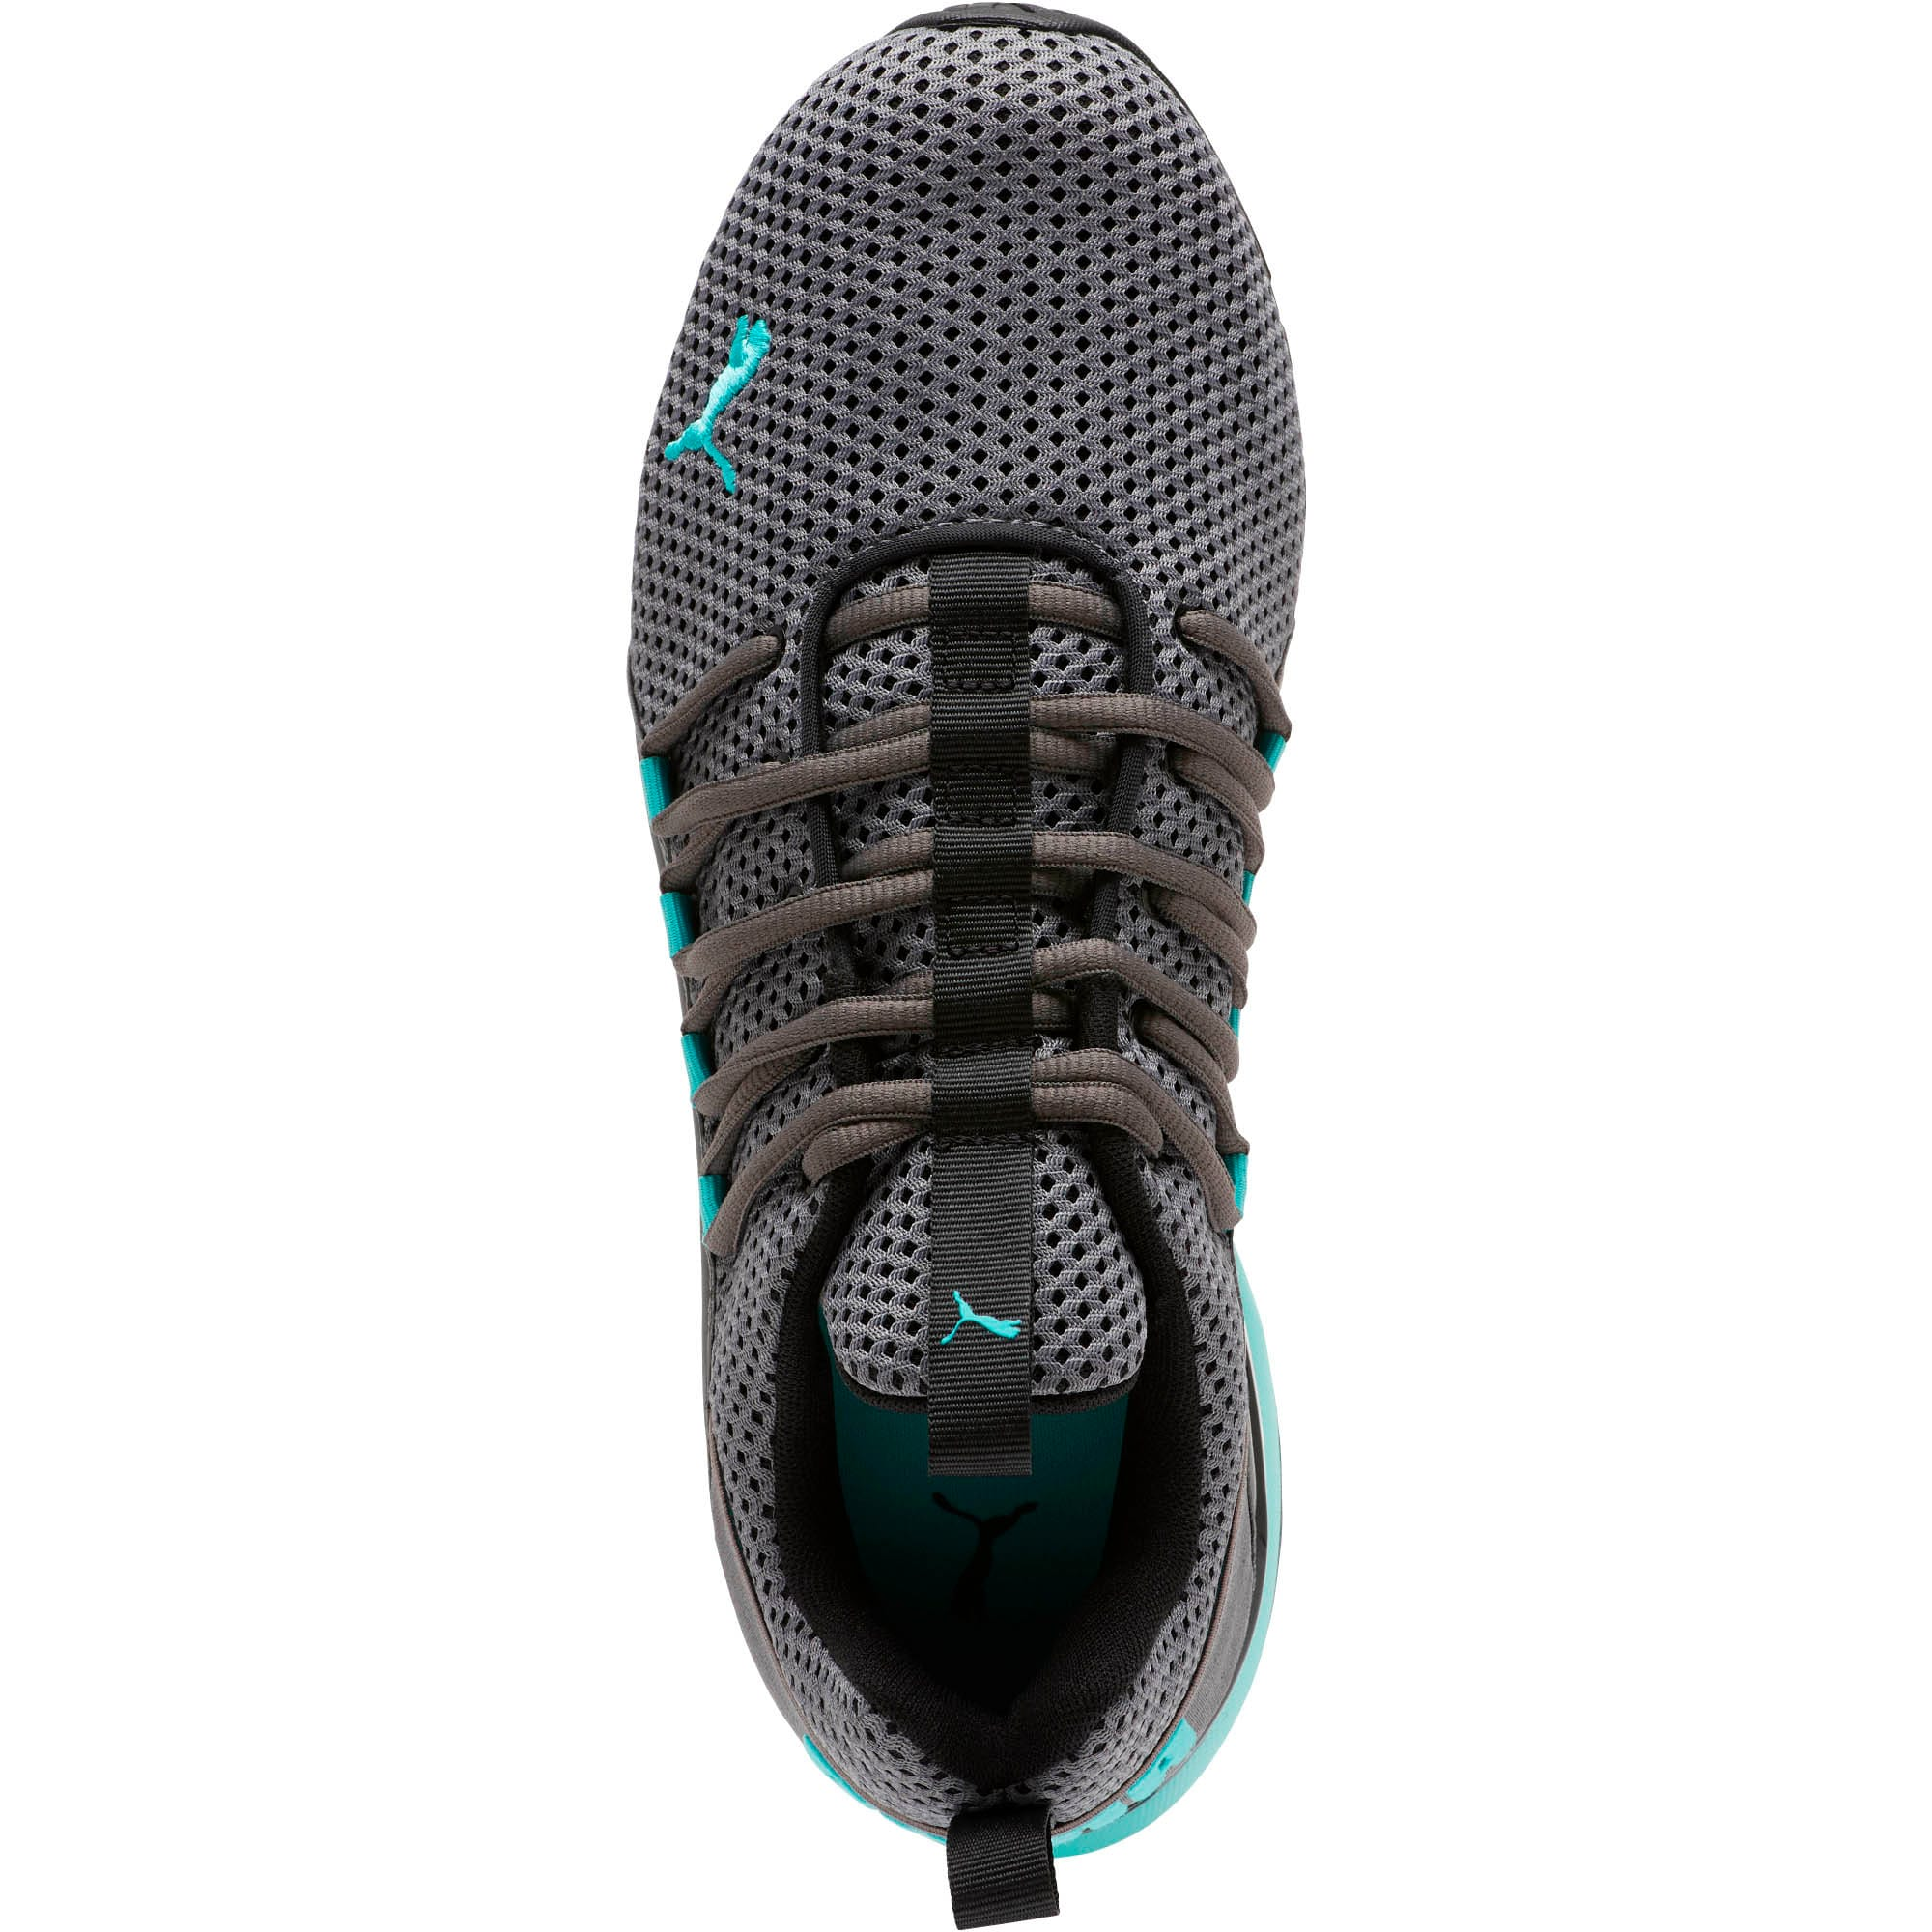 Thumbnail 5 of Axelion Breathe Men's Training Shoes, P Black-CASTLEROCK-Blue Turq, medium